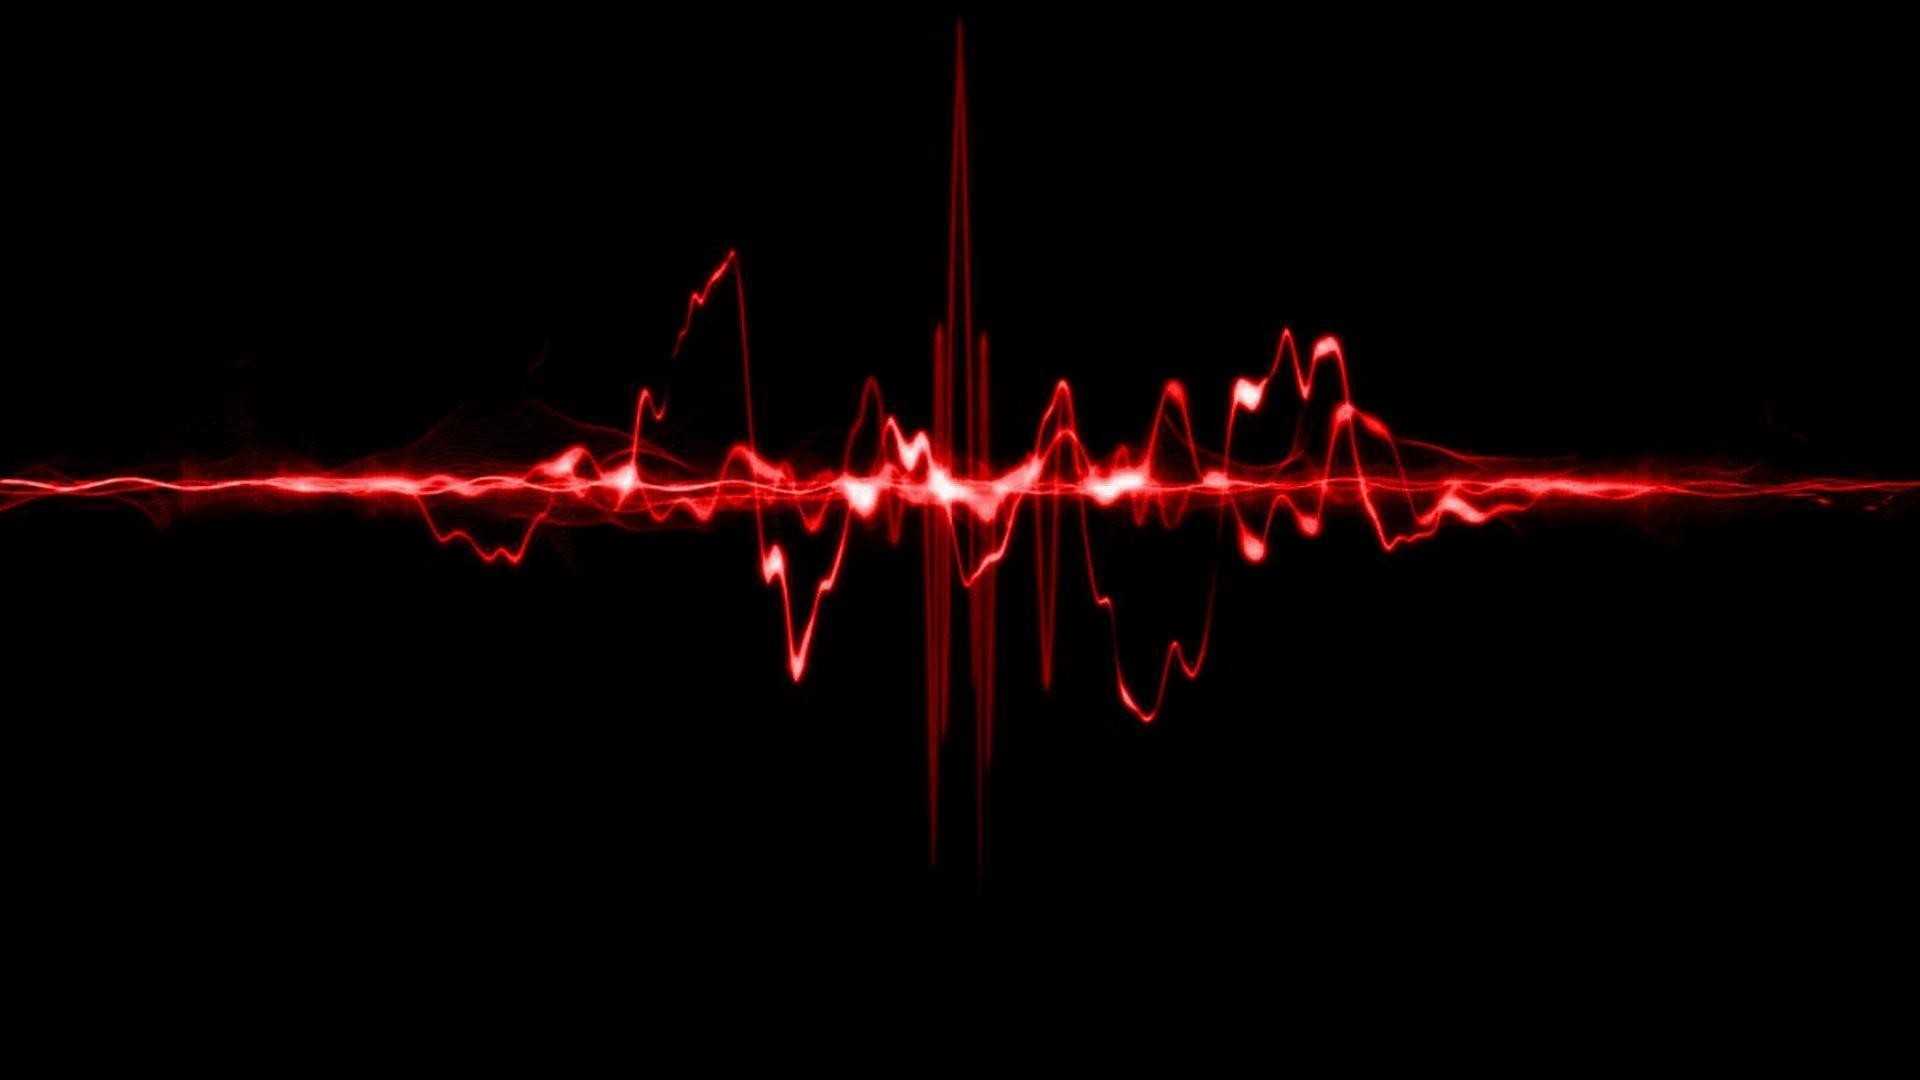 Sound-Wave-HD-Wallpapers